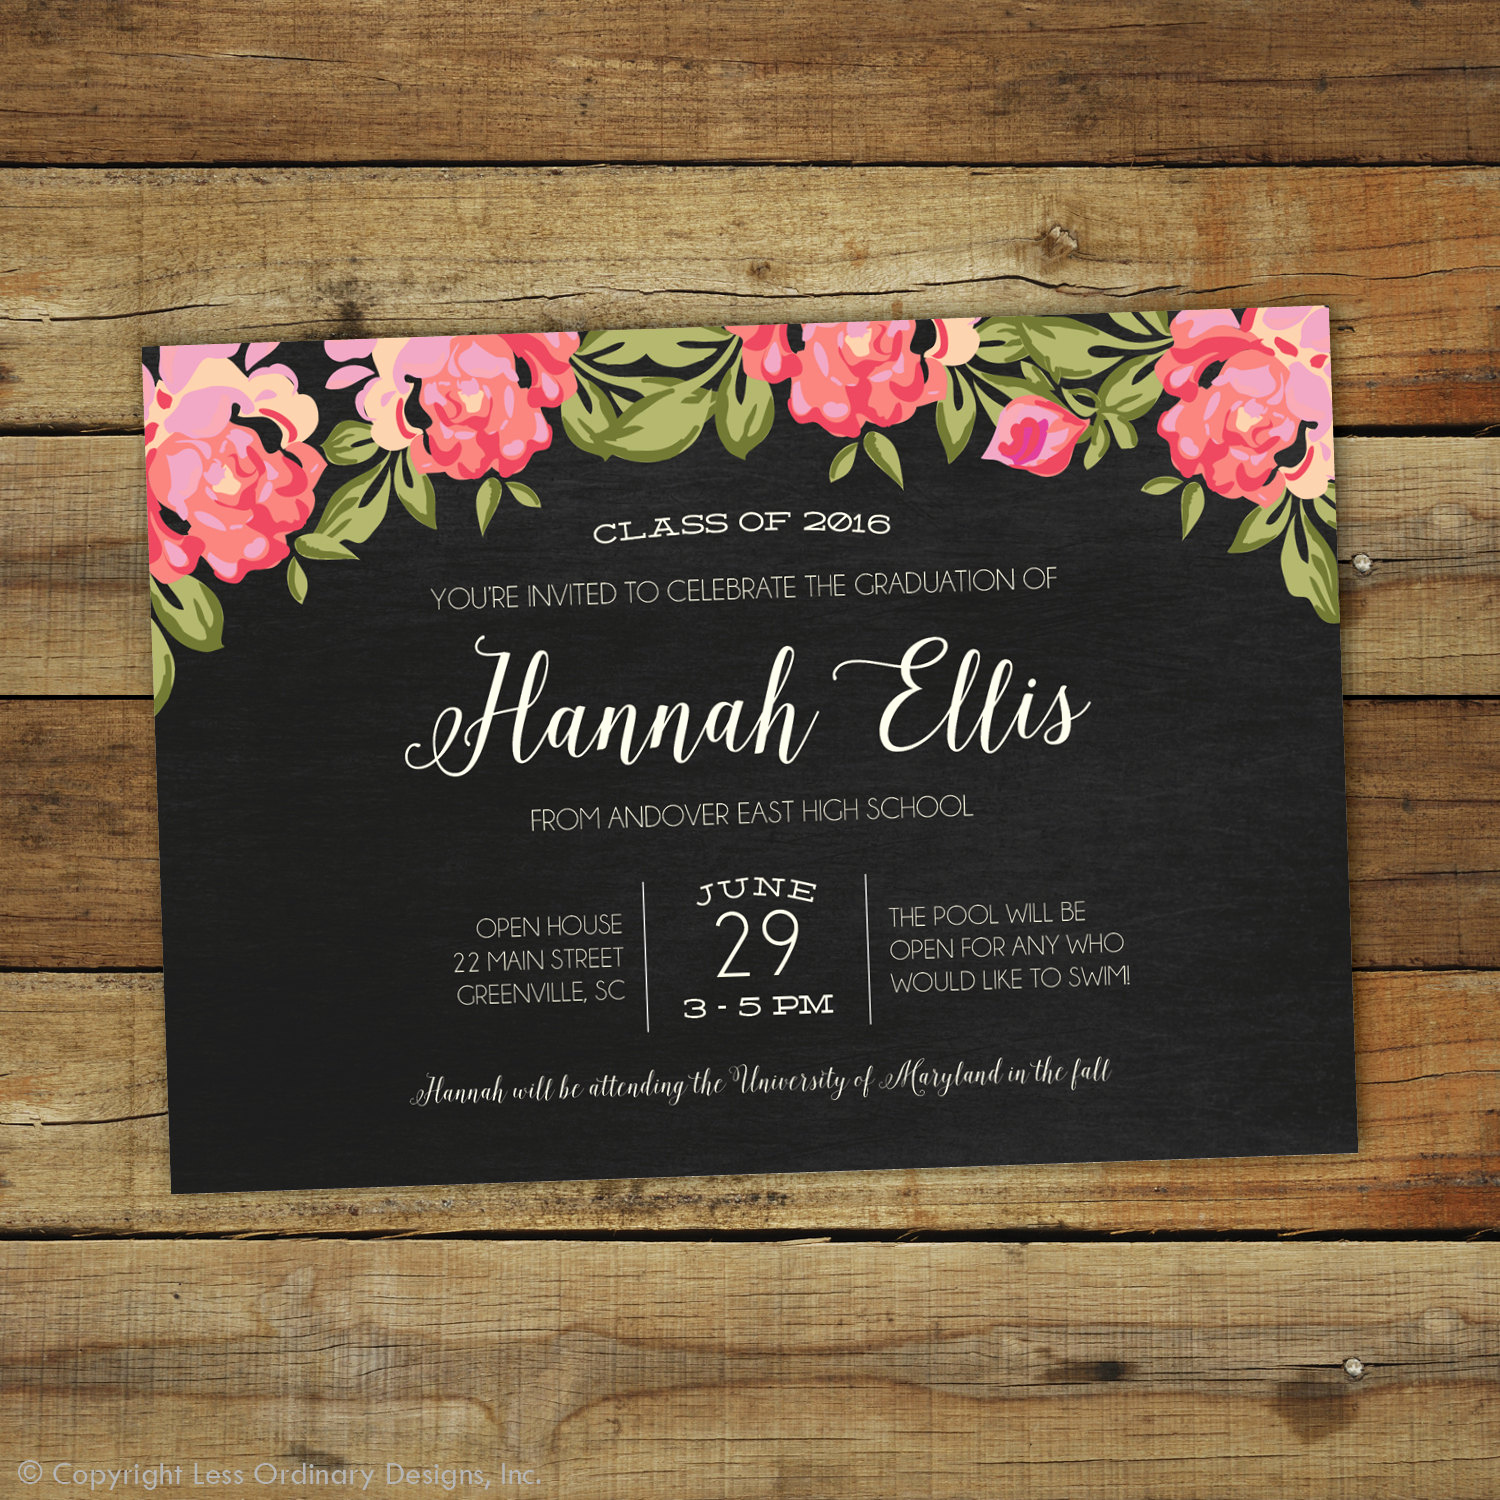 Graduation Party Invitation Maker New 2017 Graduation Party Invitation Floral Graduation Open House